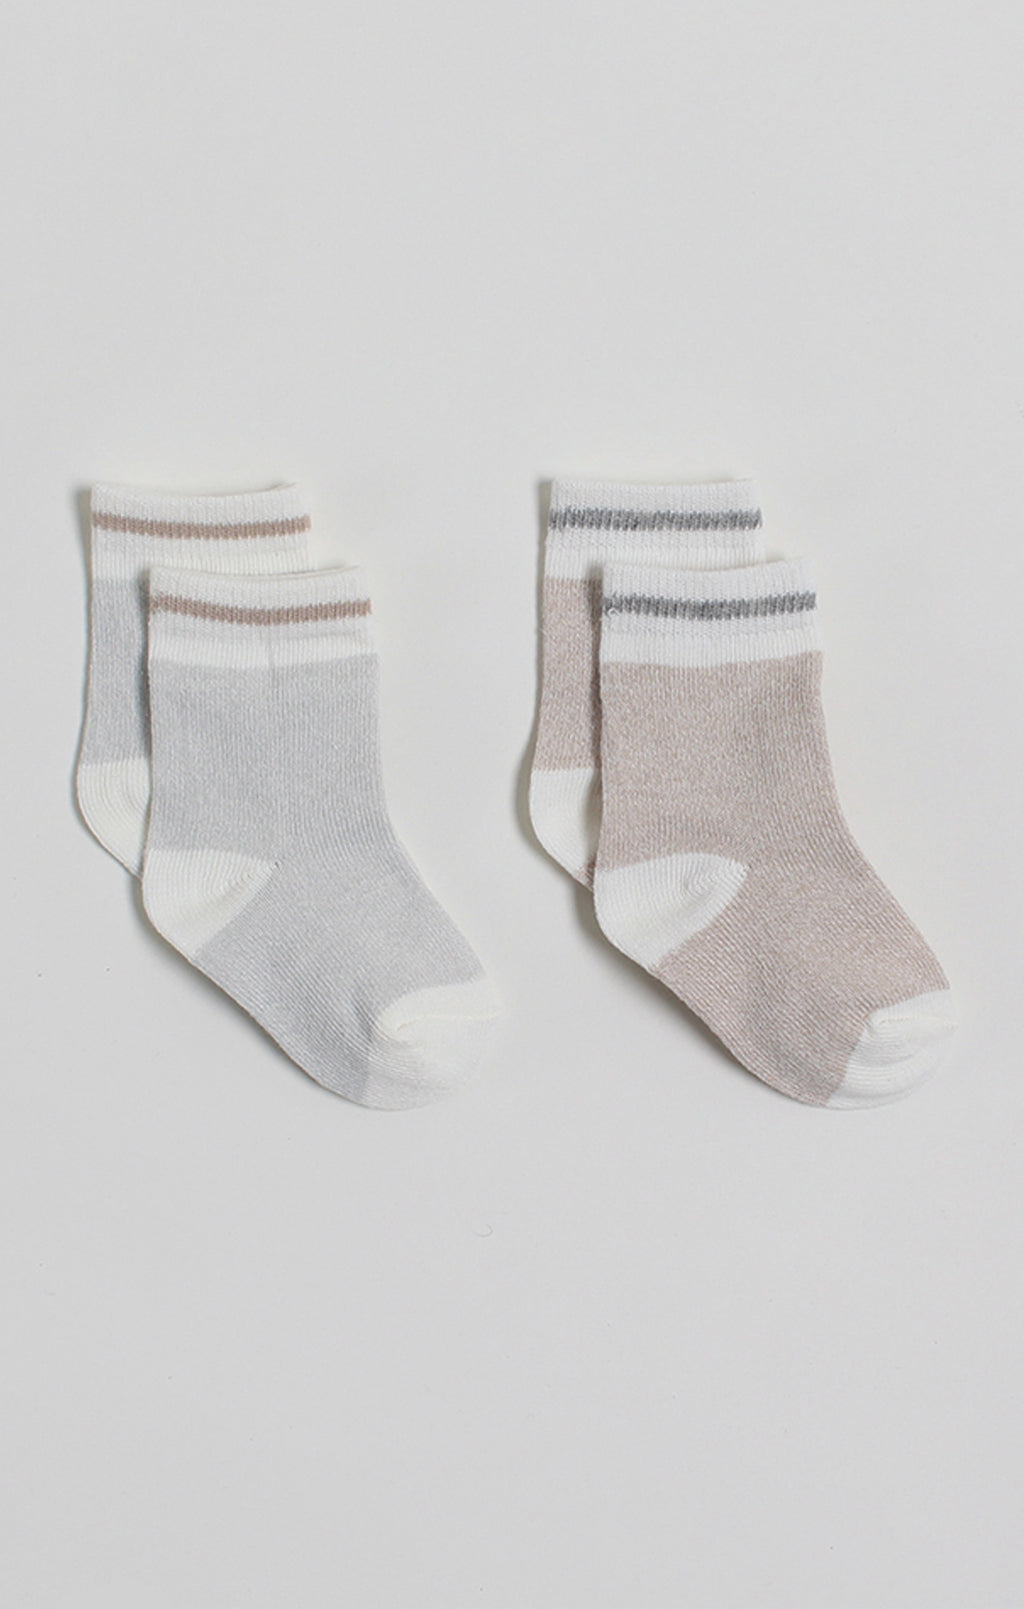 Socks - 2 Pk Gray & Cream Boot Socks | Accessories